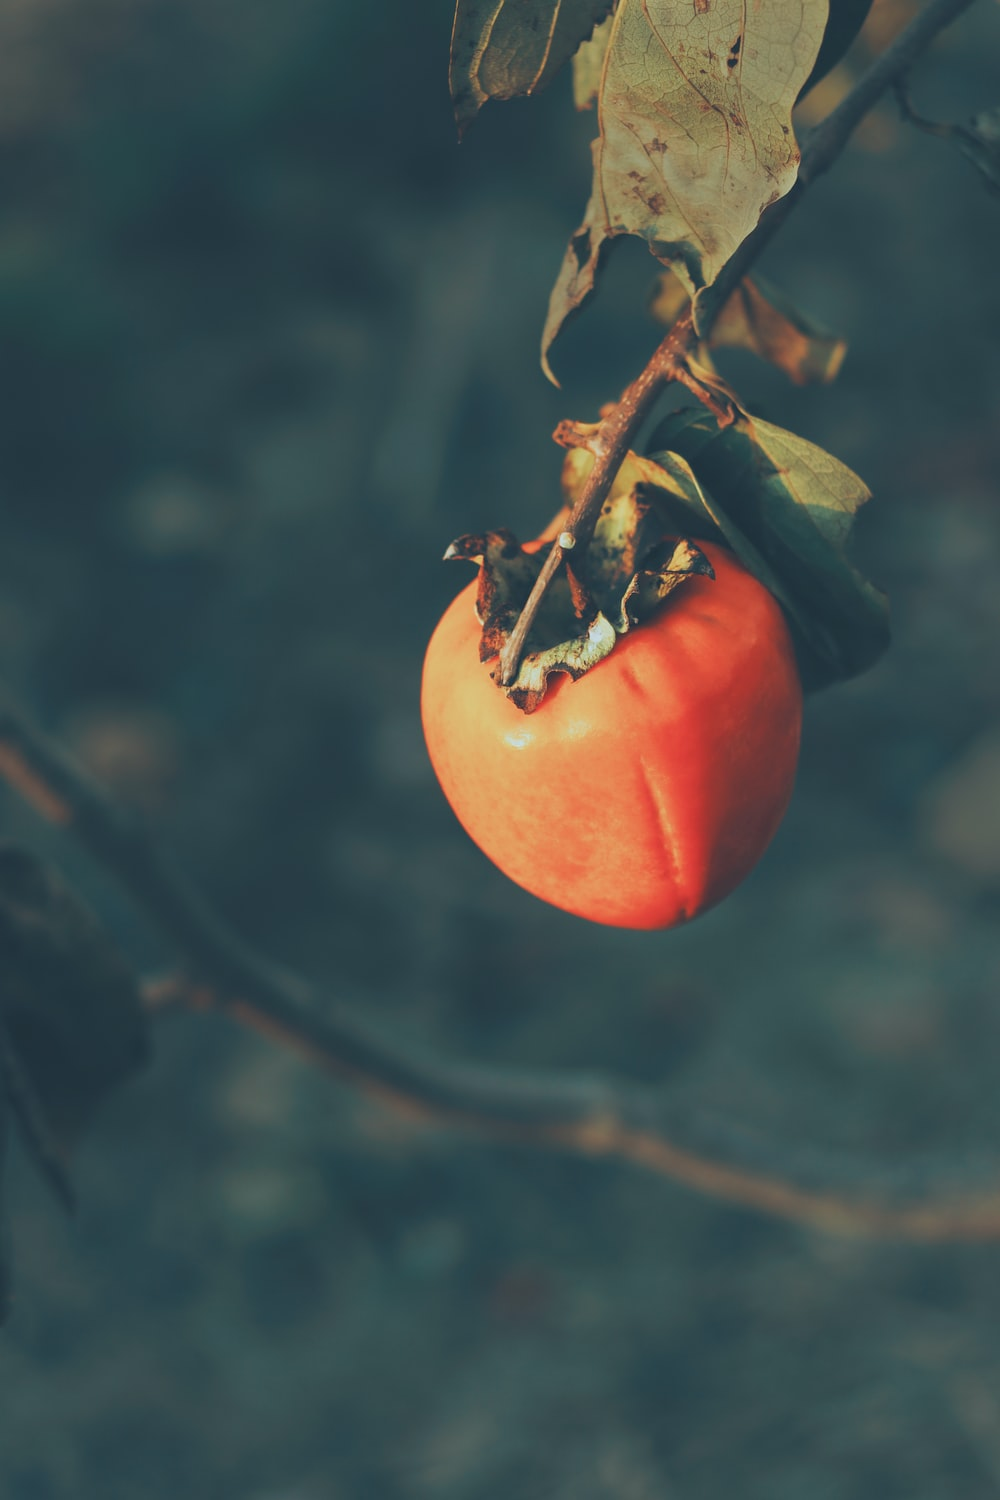 red tomato in close up photography